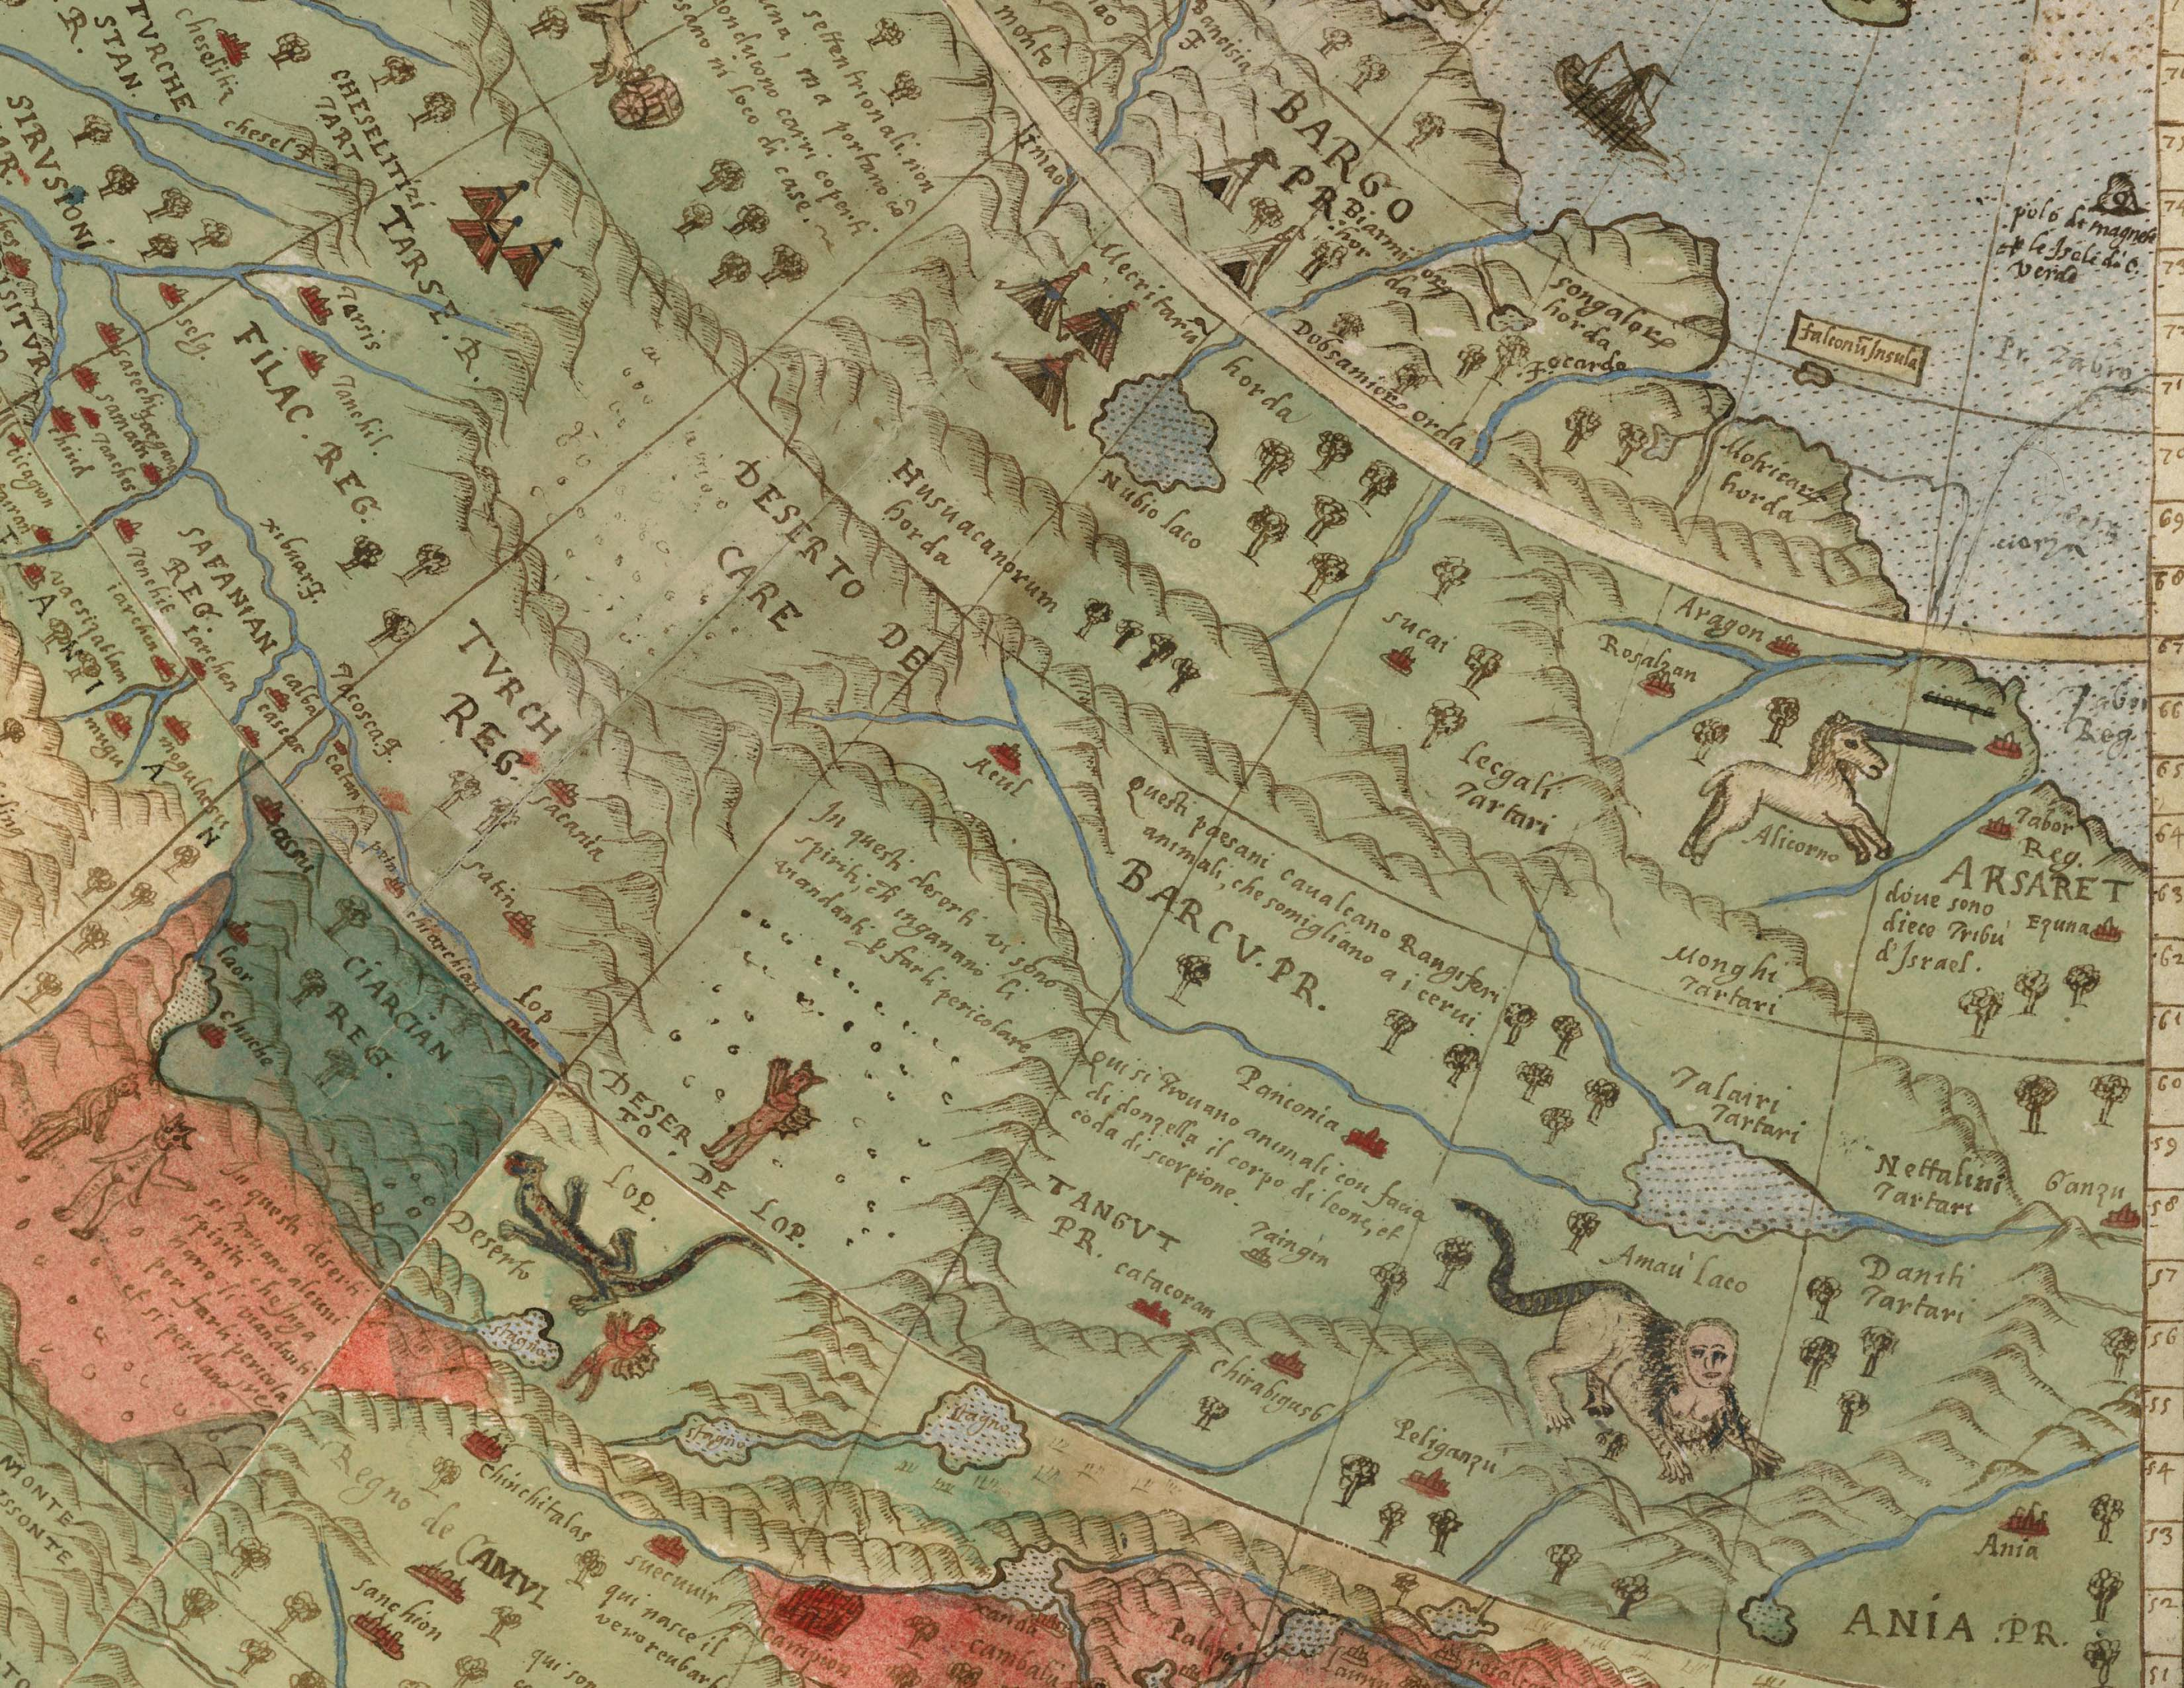 David Rumsey Historical Map Collection   Largest Early World Map     Details of Tavola Seconda  Tavola Ottava  and Tavola Setima  Northern  Siberia  Central Asia